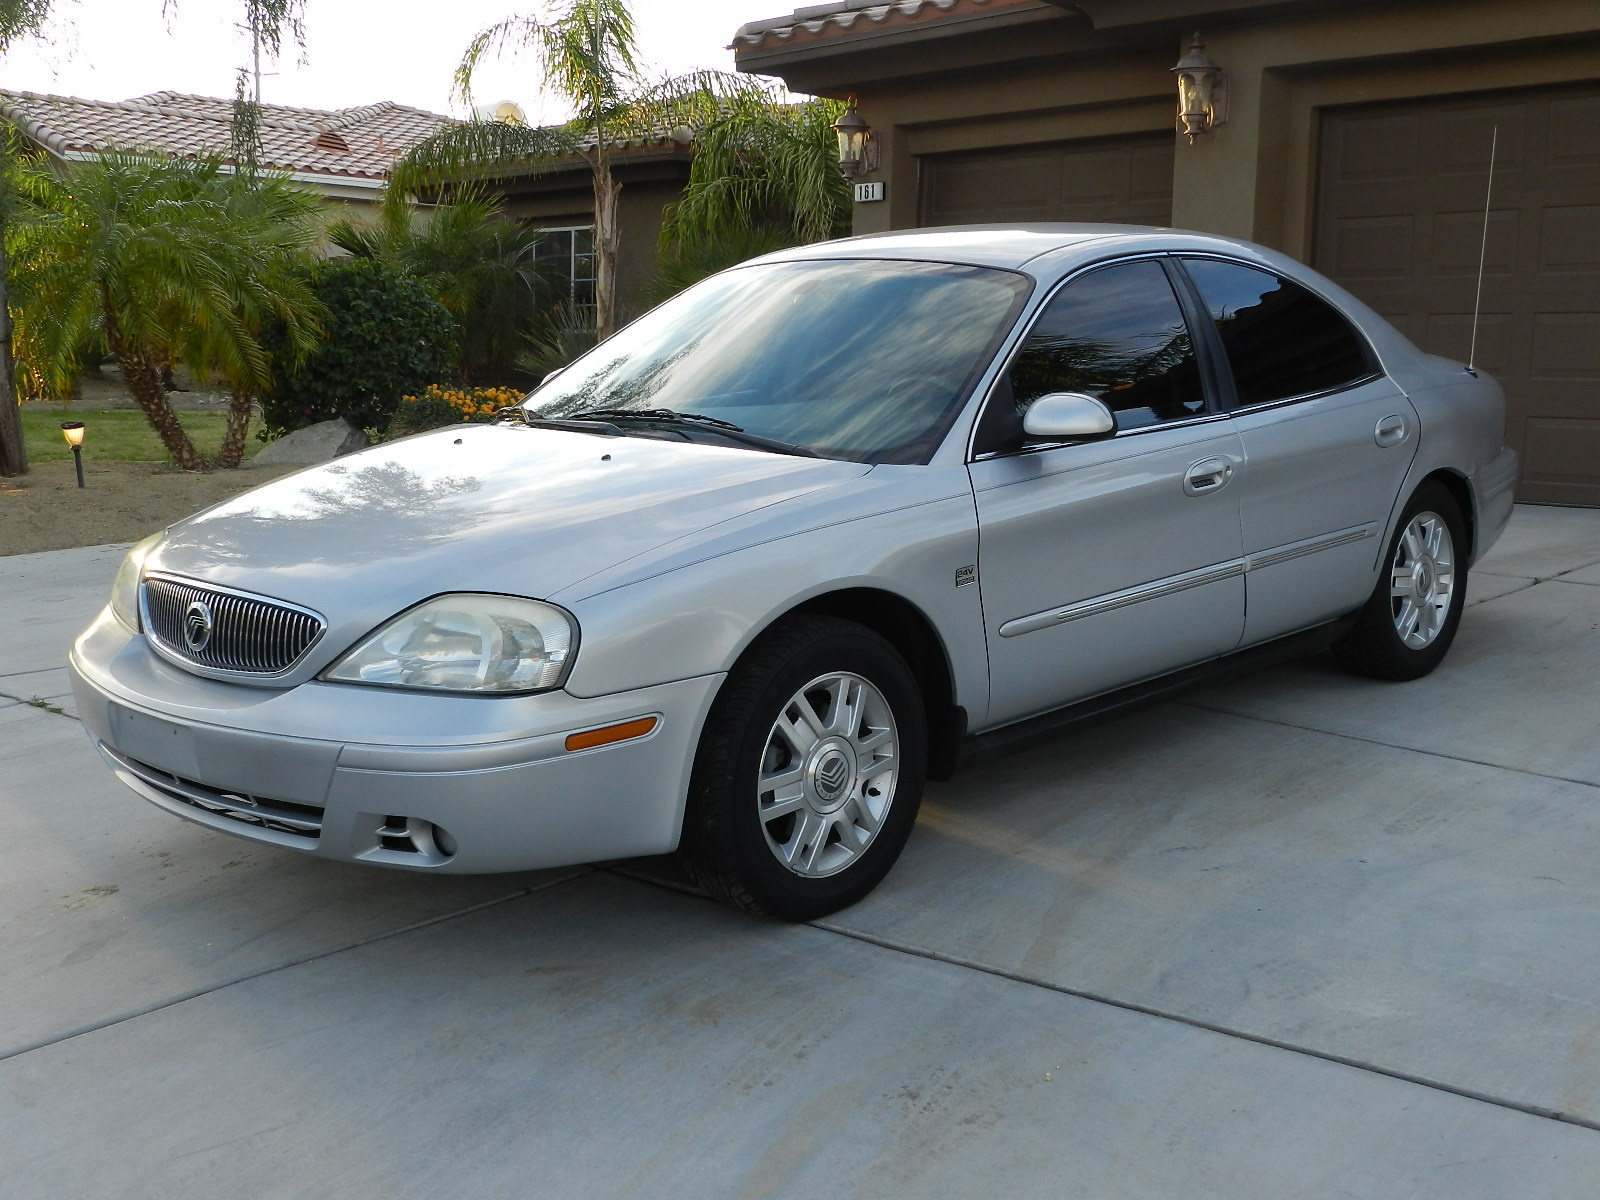 Mercury Sable Ls Pic on 2004 Buick Lesabre Limited Special Edition